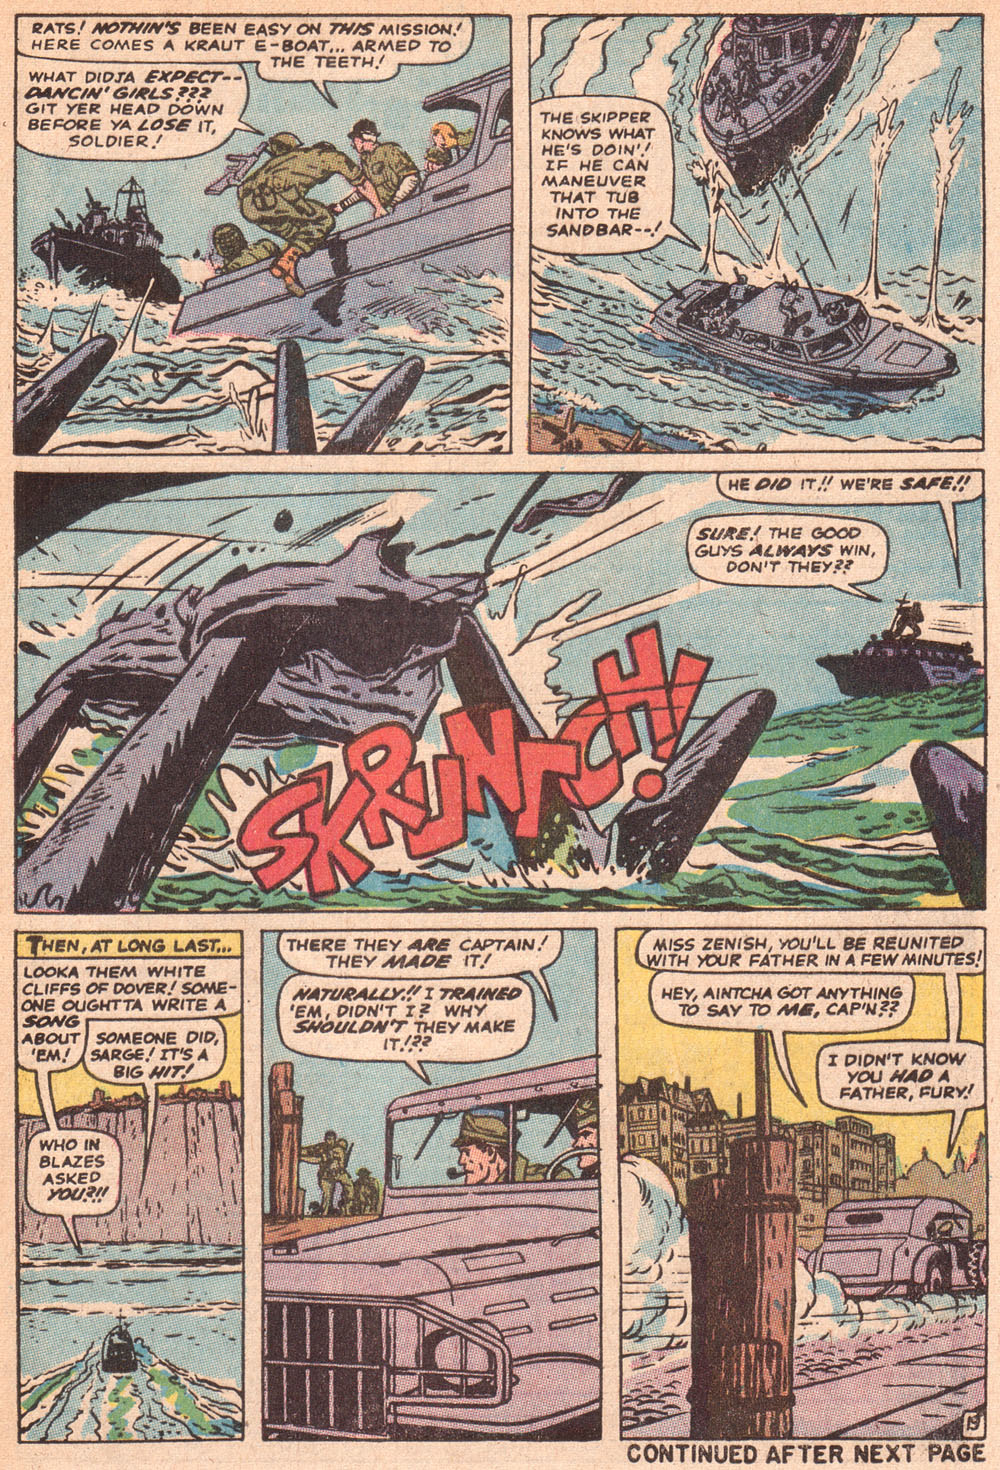 Read online Sgt. Fury comic -  Issue #80 - 29